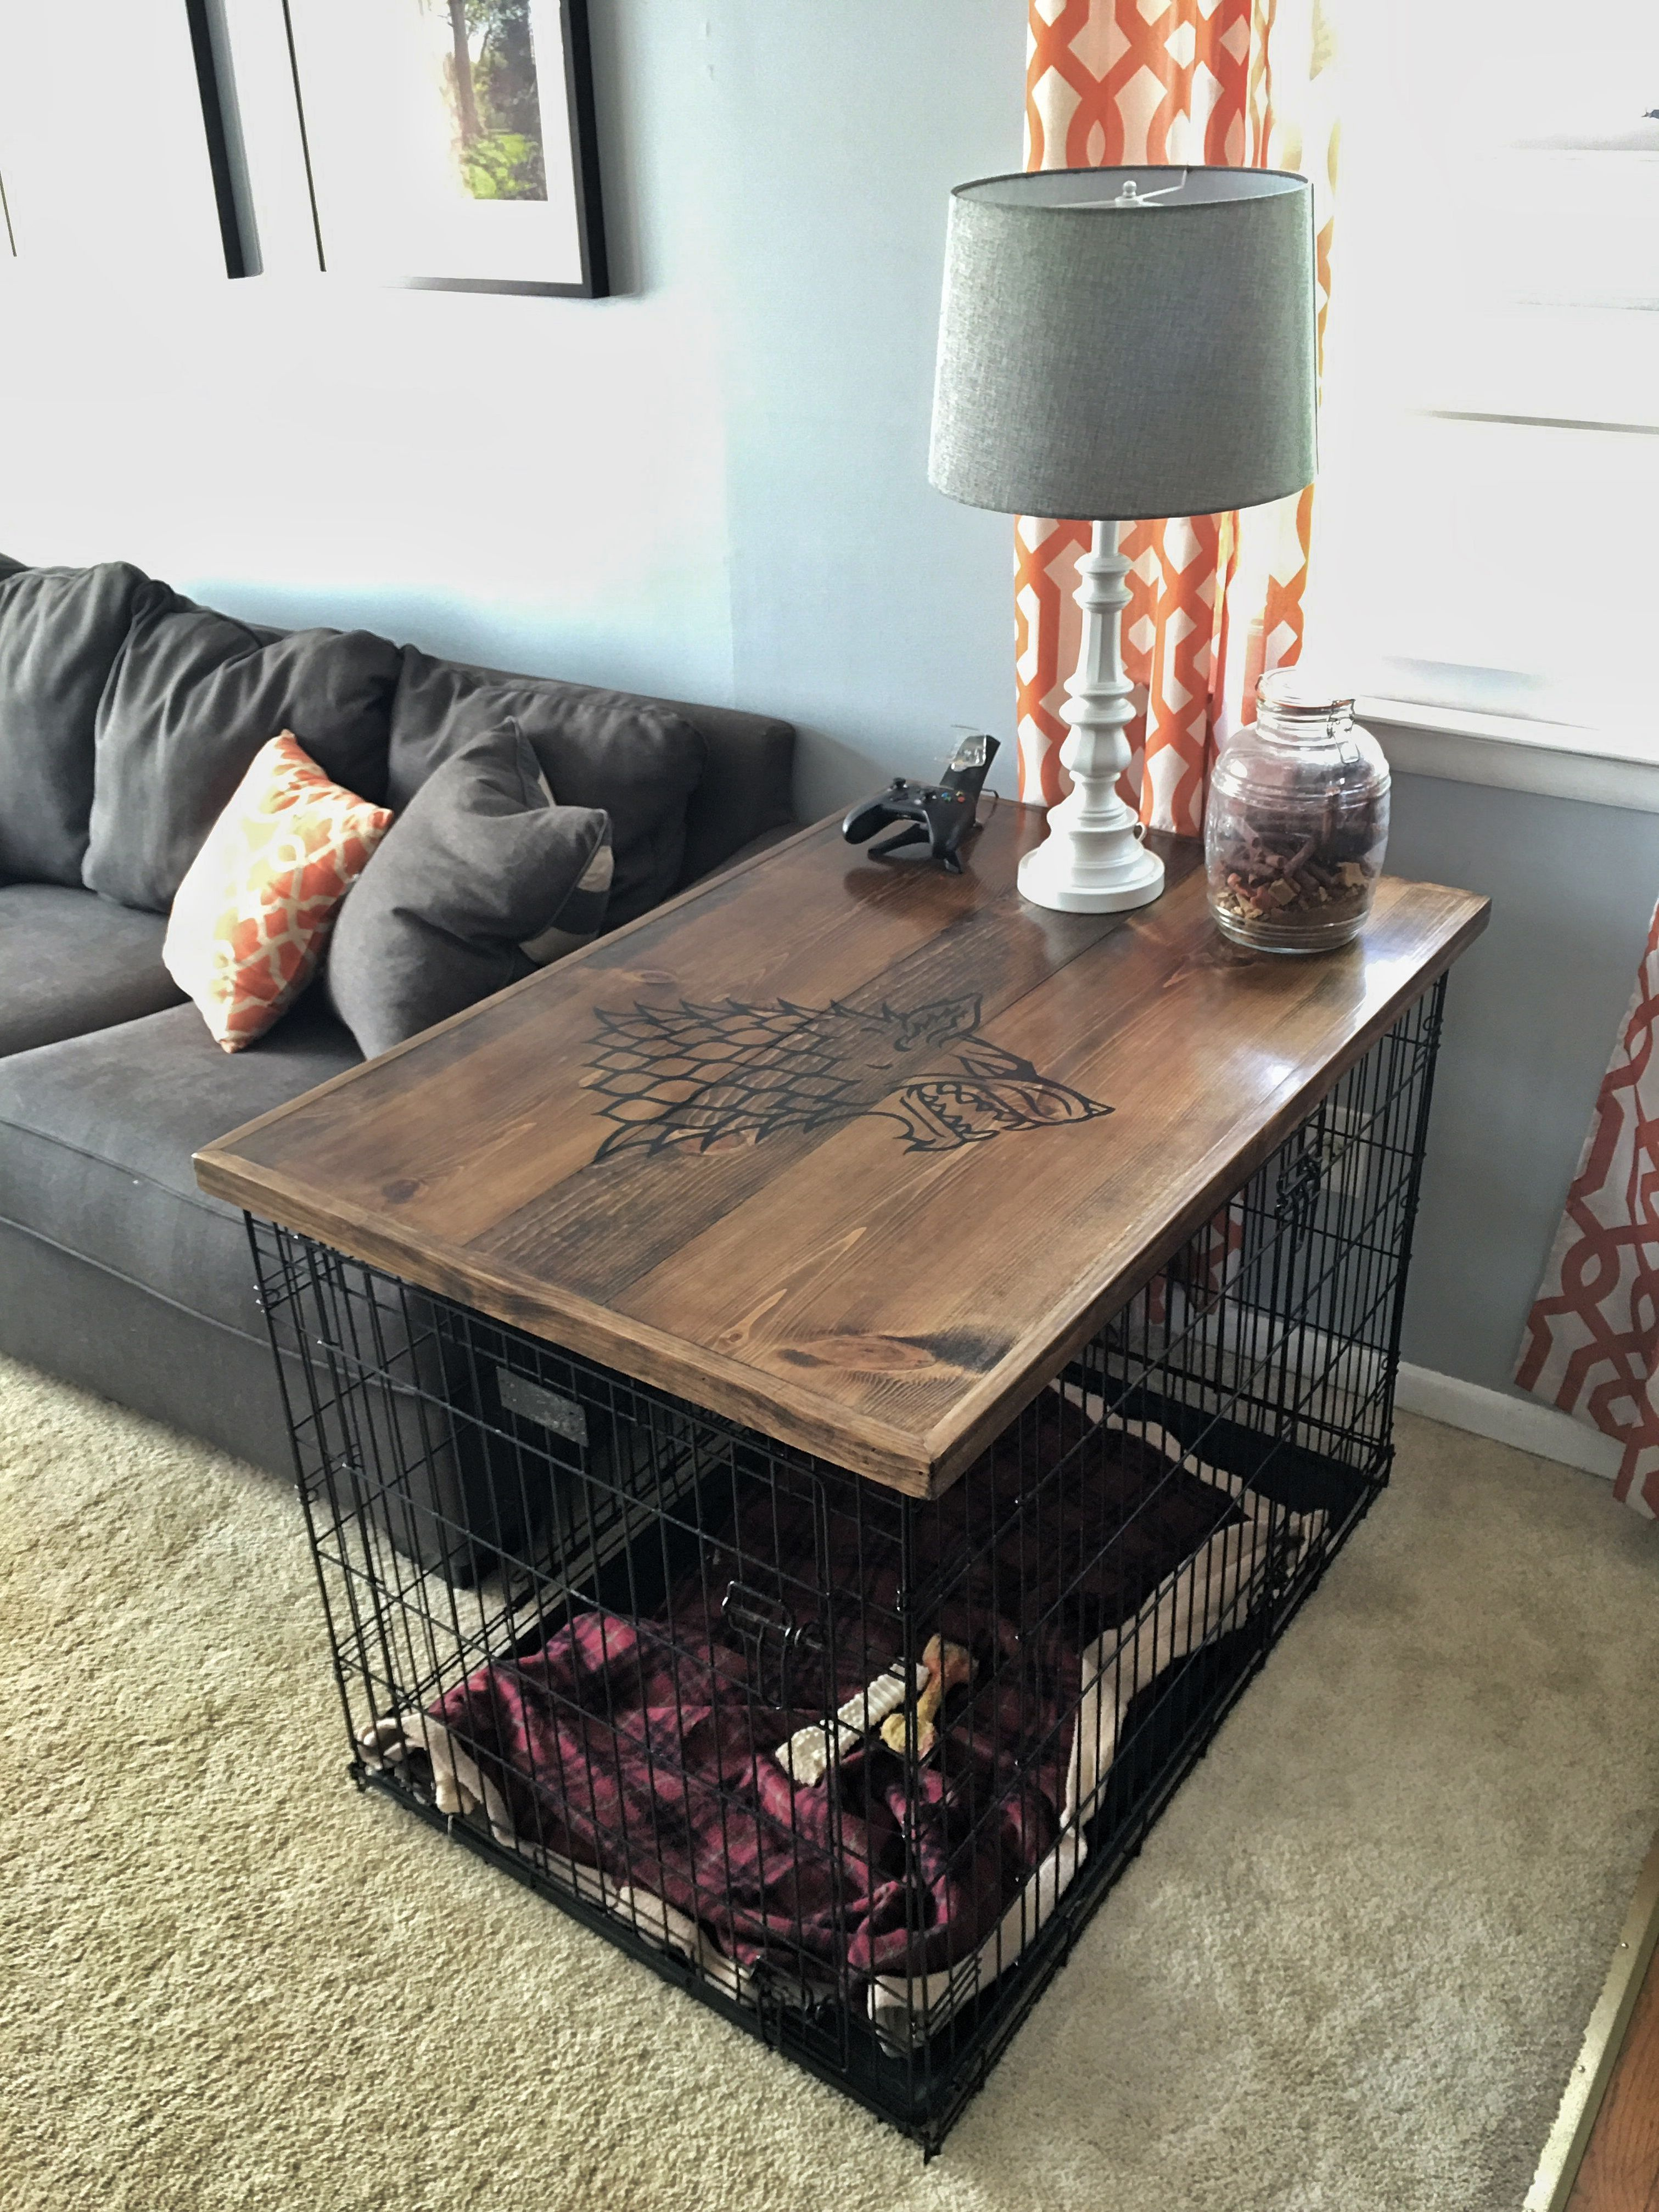 16 Fantastic DIY Projects Wood Furniture Ideas Dog crate